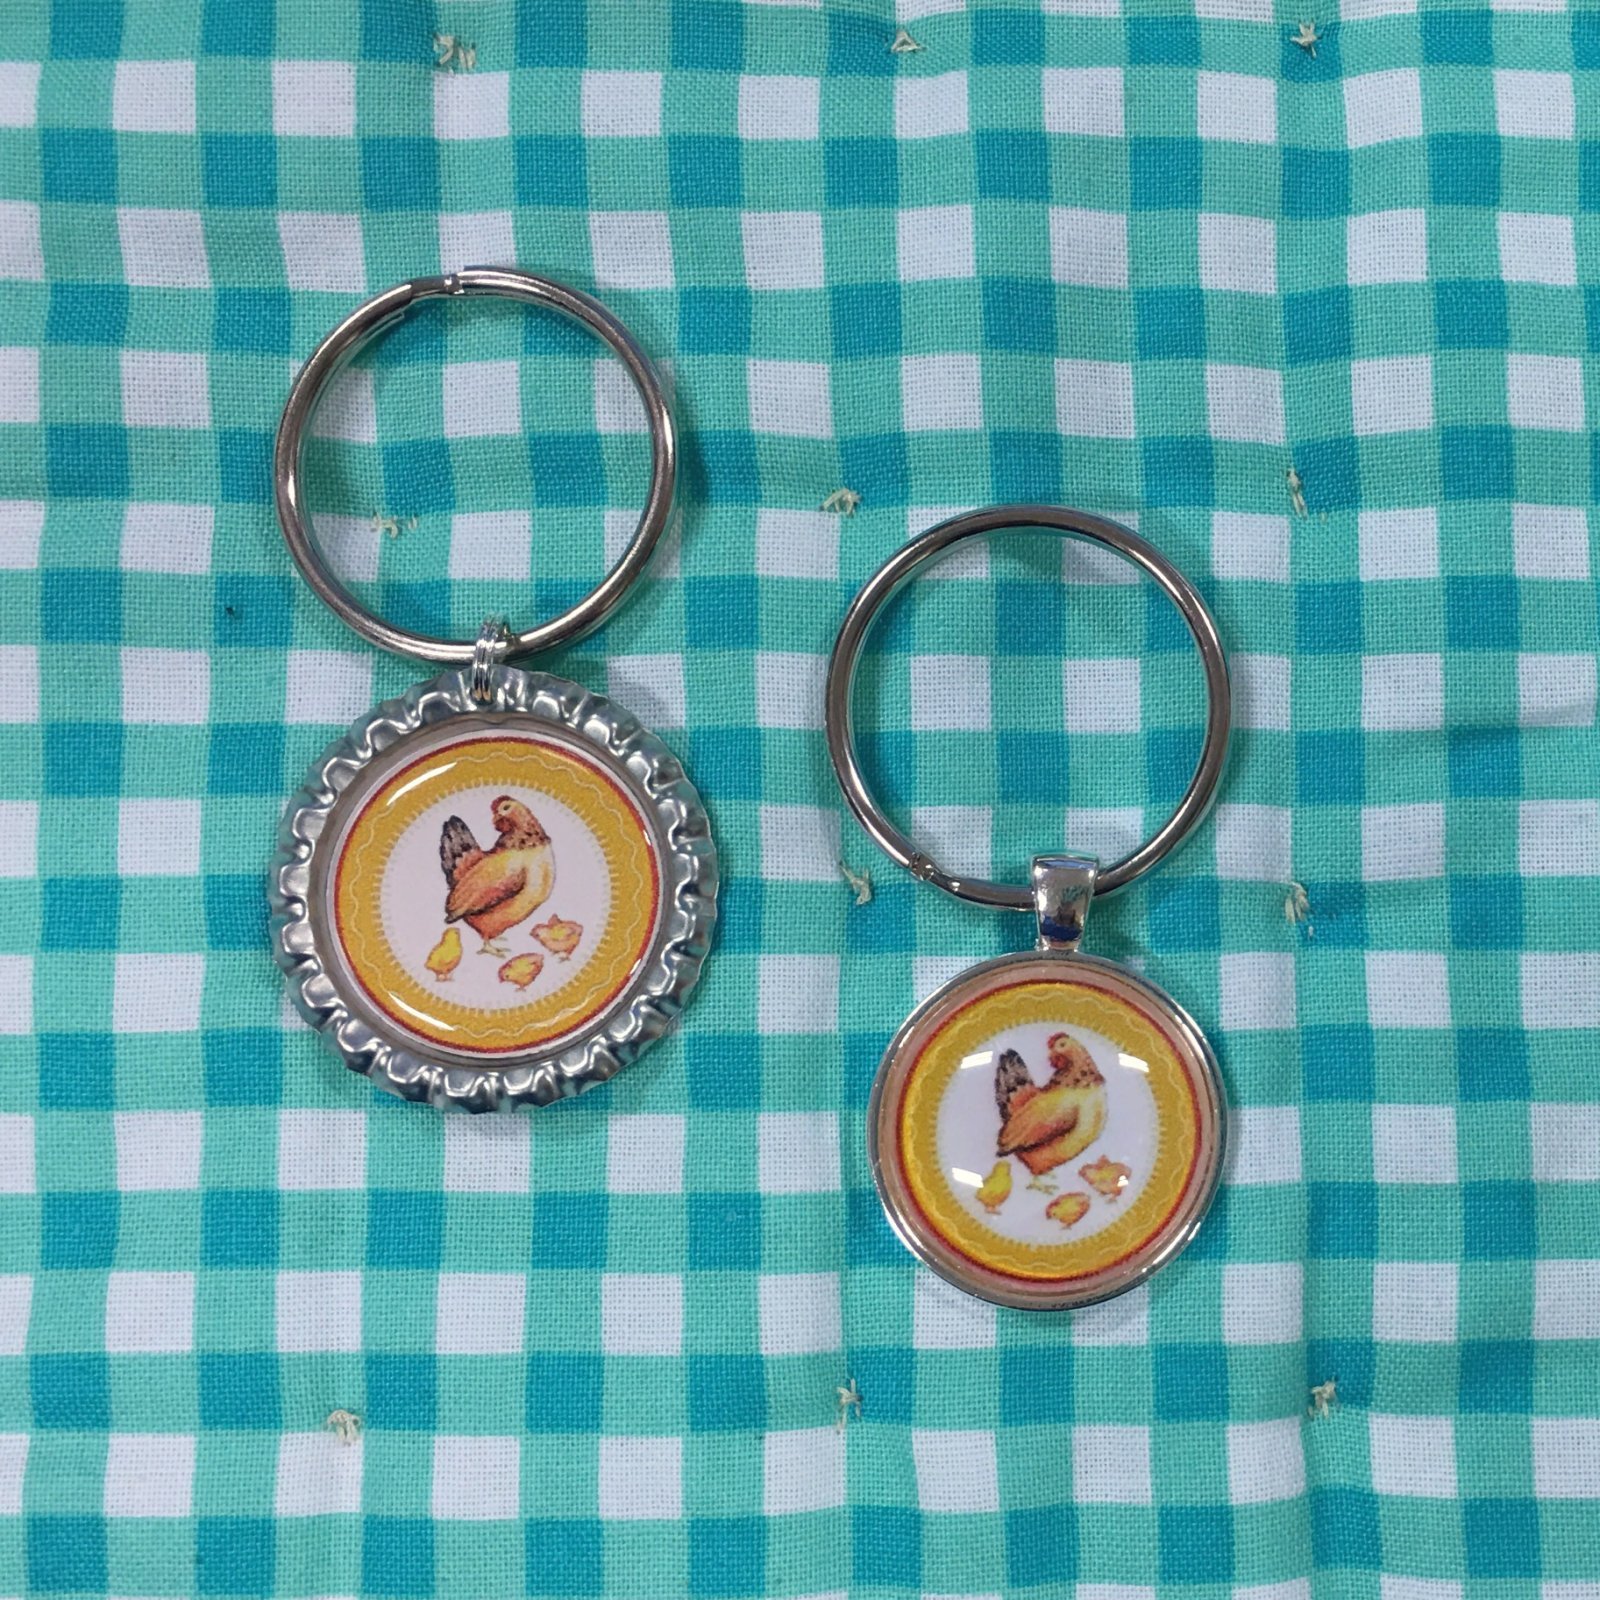 Hen & Chicks Studio Keychains